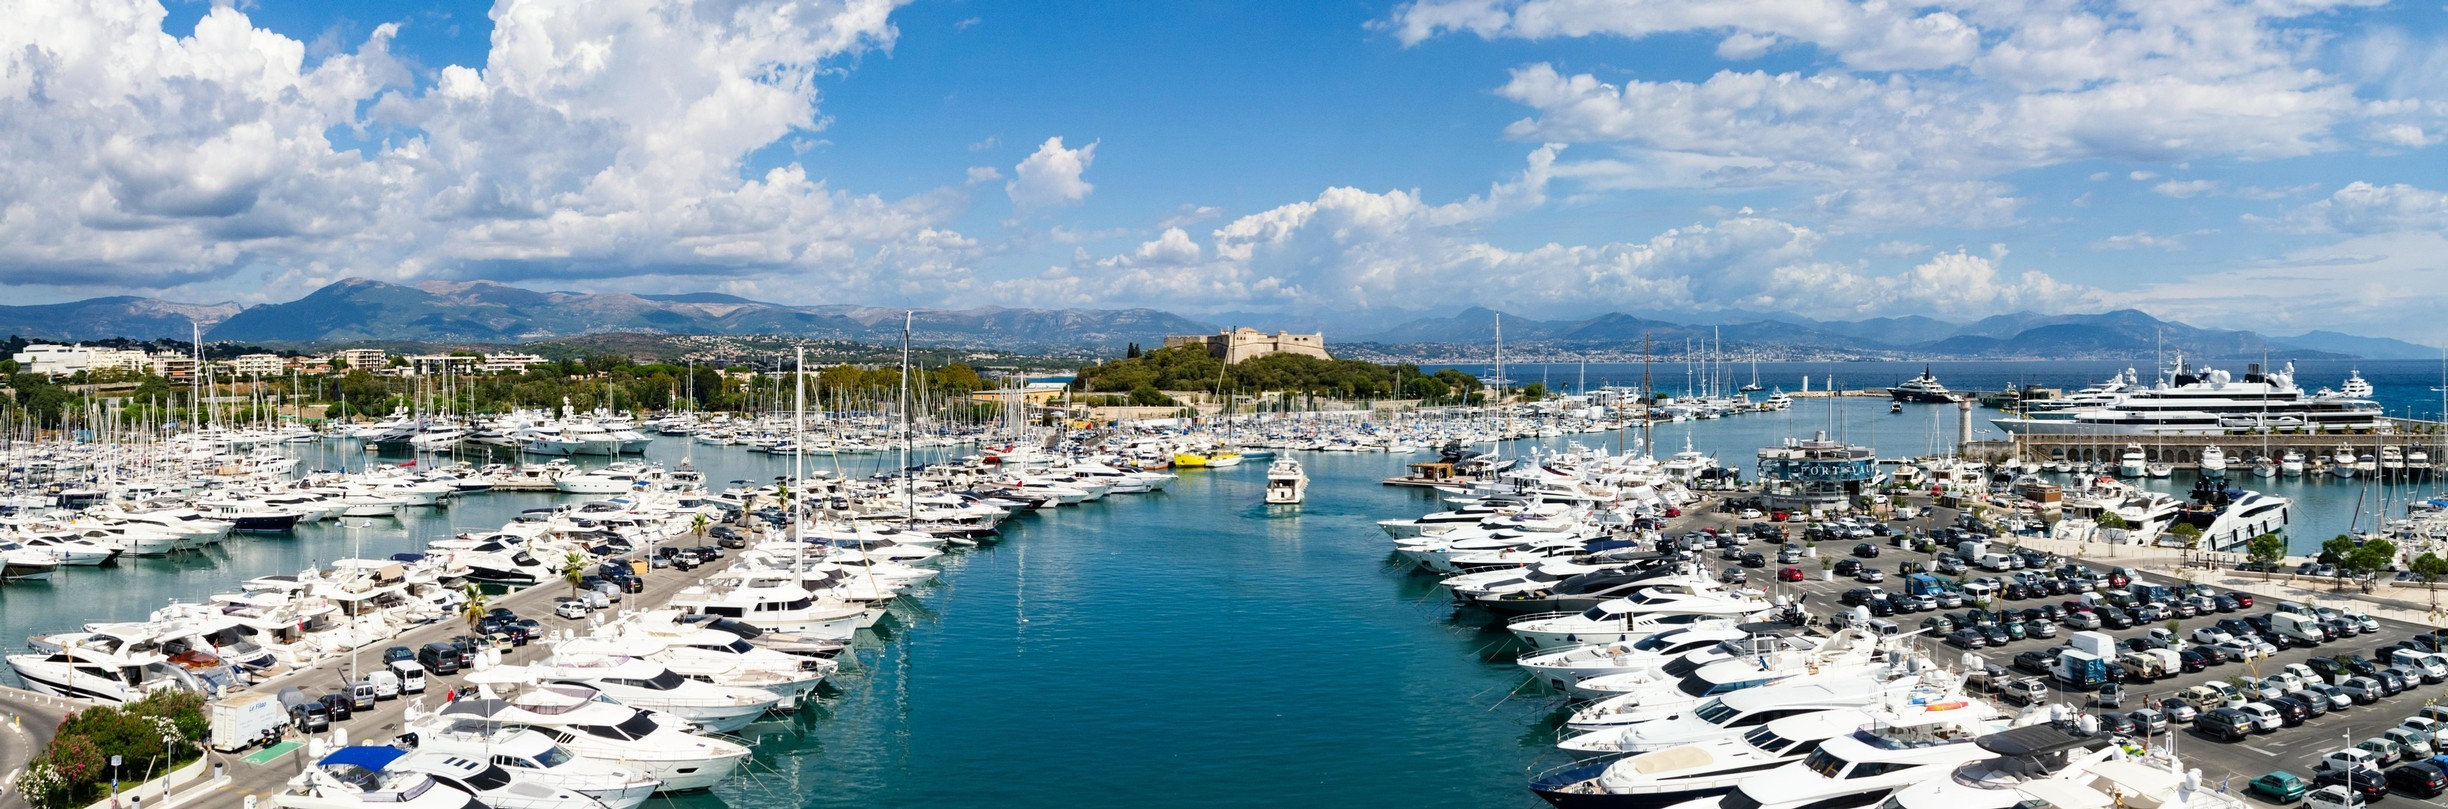 Yachts for charter Antibes